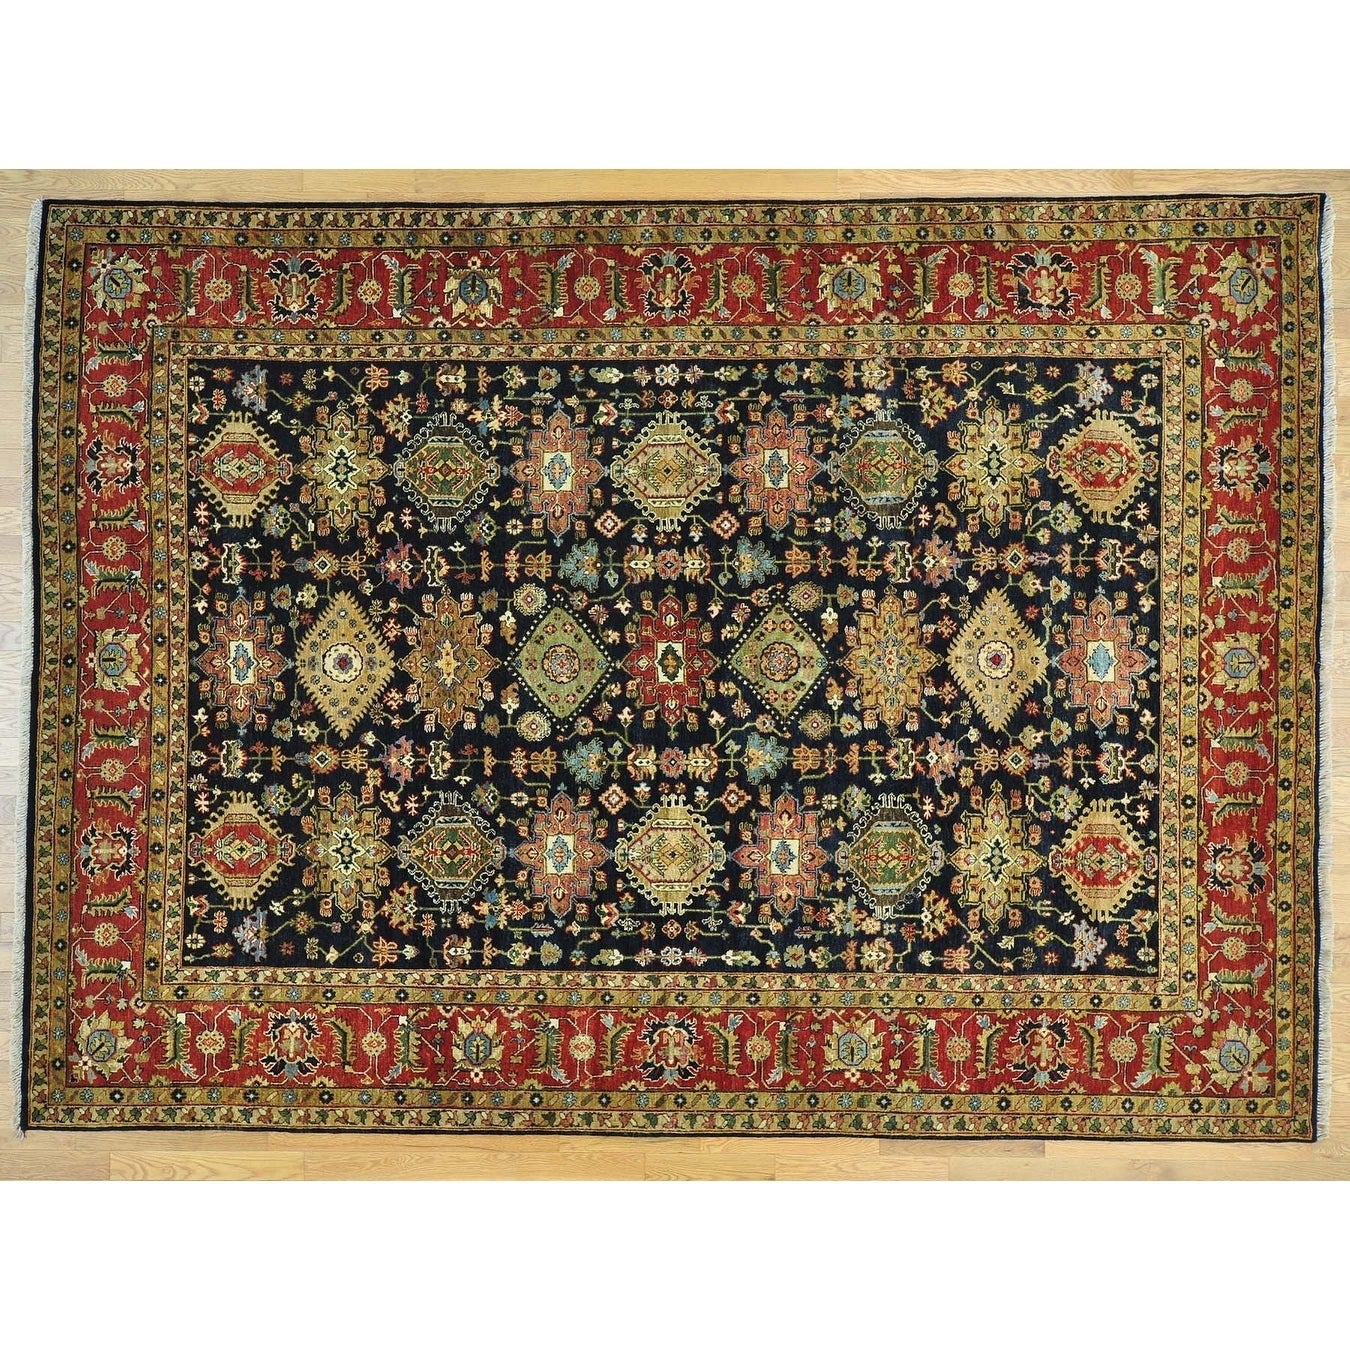 Hand Knotted Black Heriz with Wool Oriental Rug - 8'9 x 12'